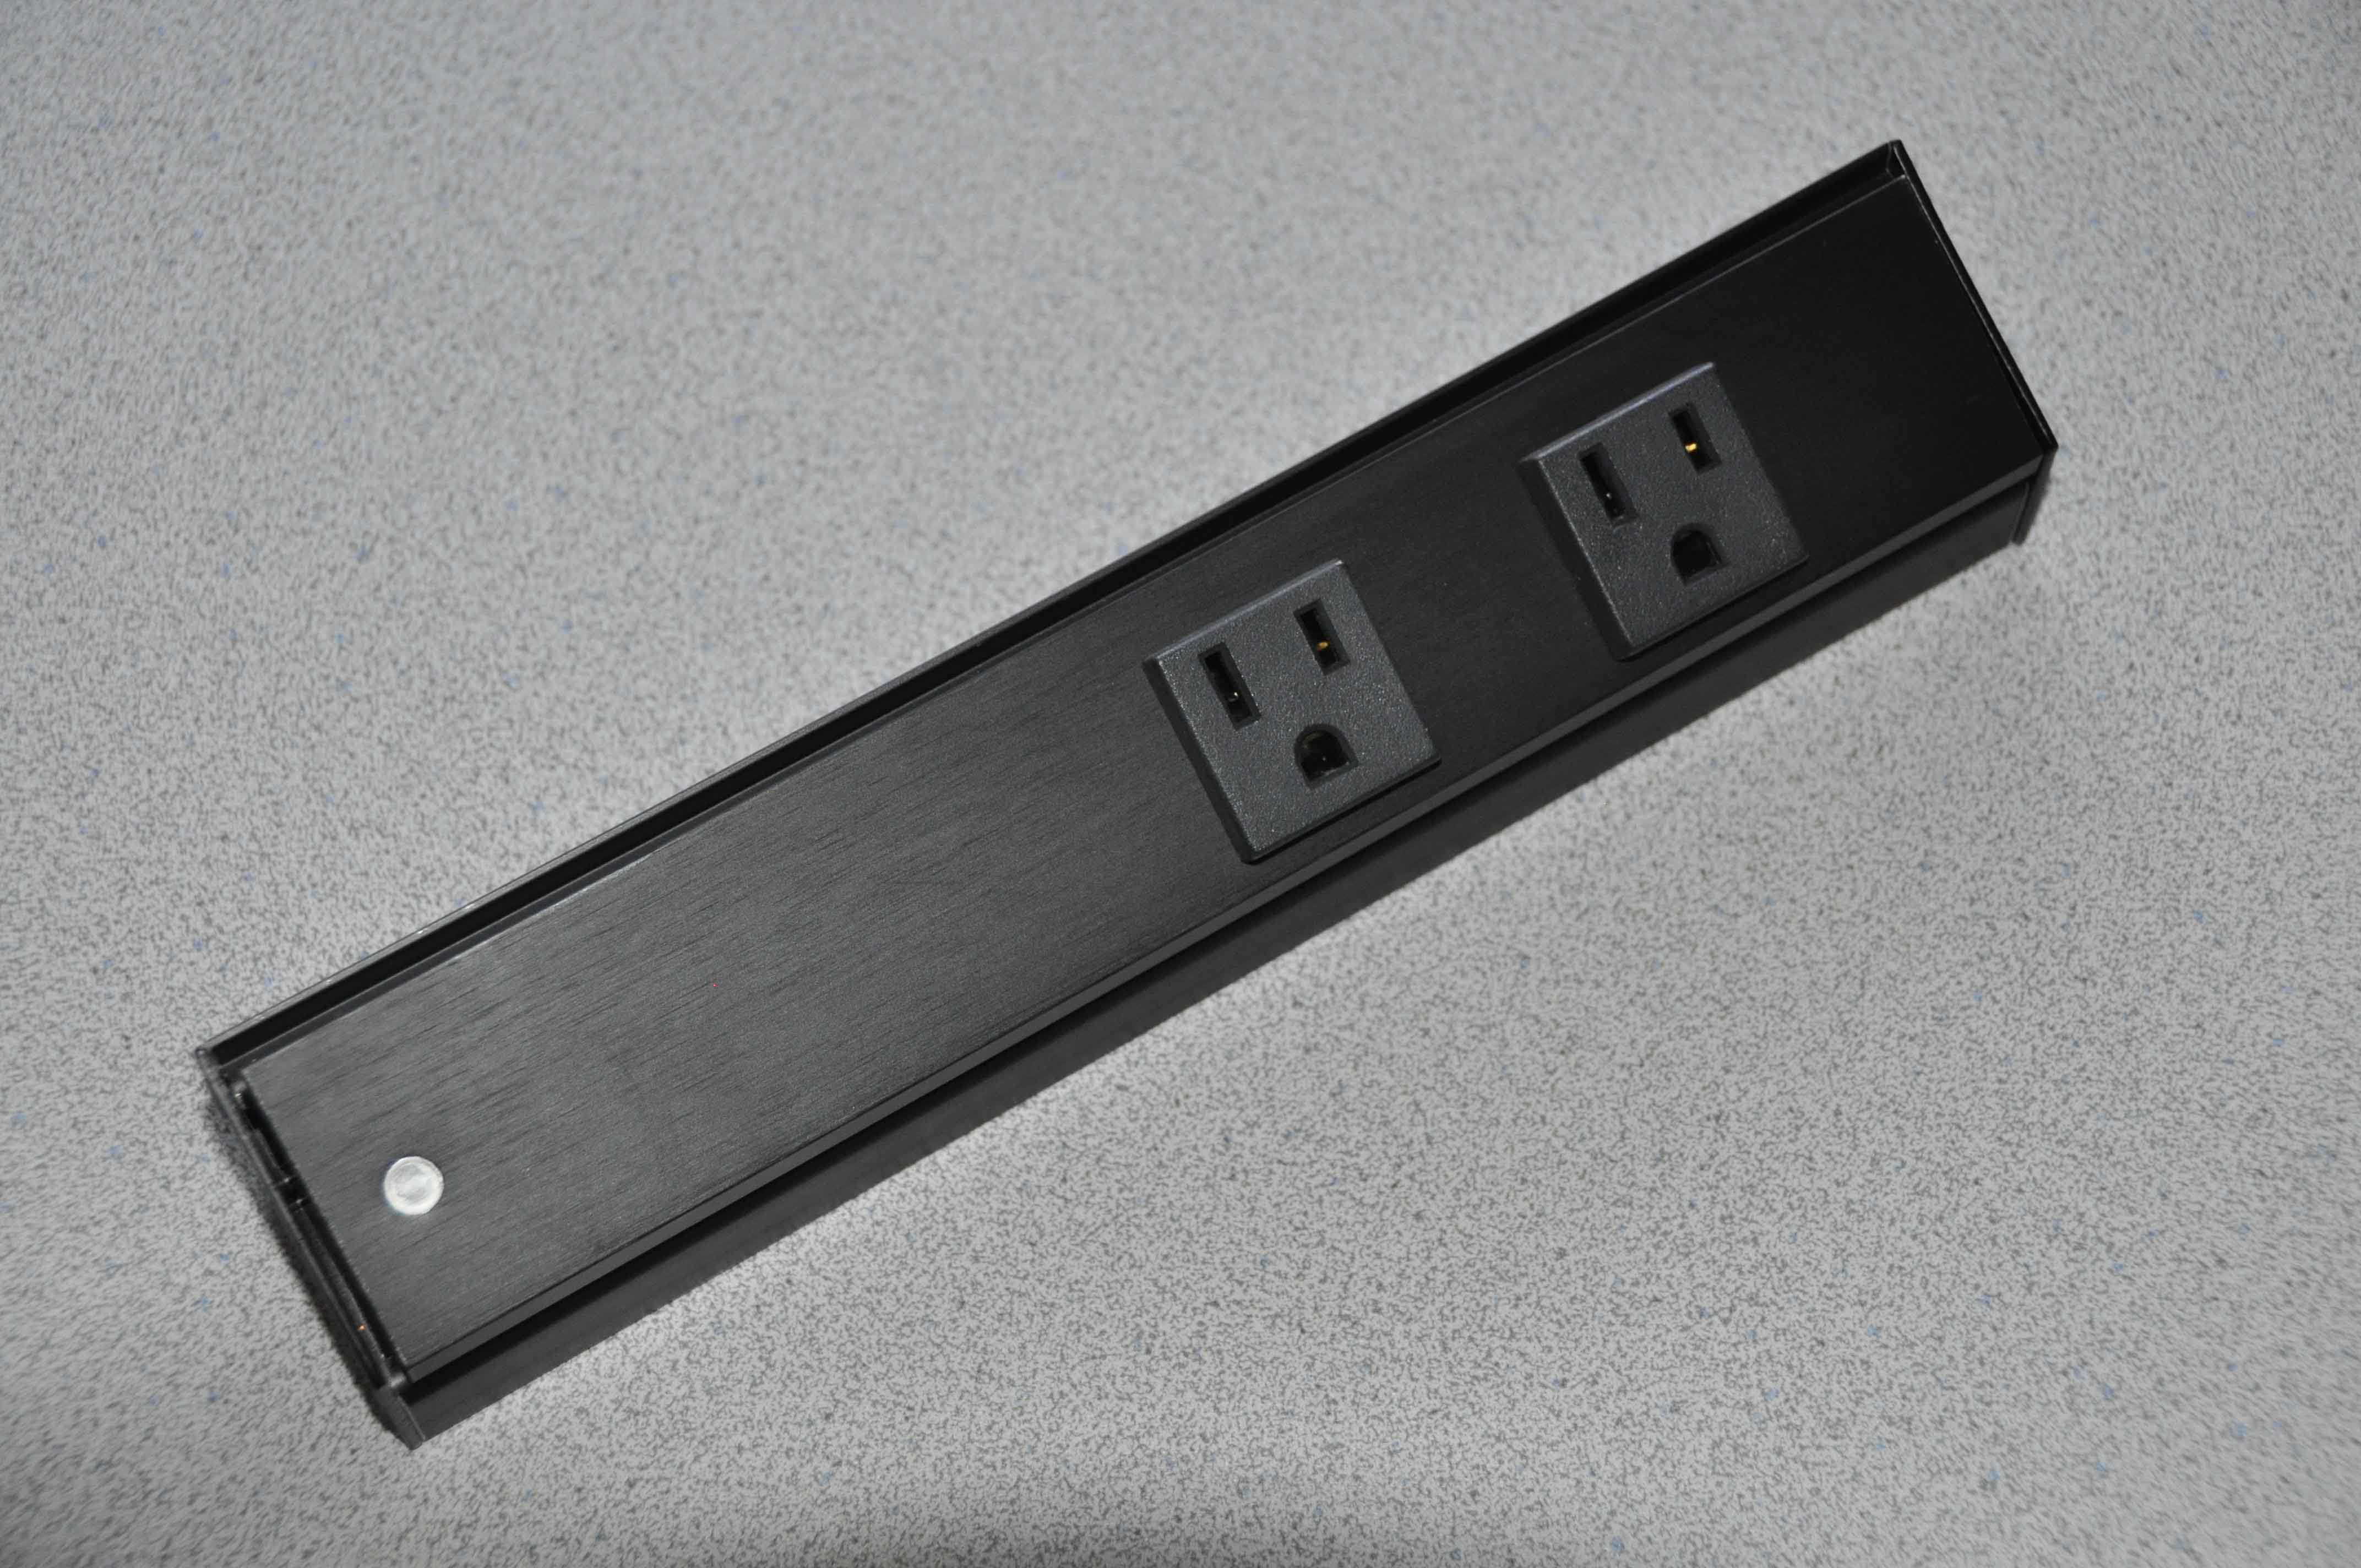 New Slim Profile Angled Power Strips With Tamper Resistant Outlets  are now available!